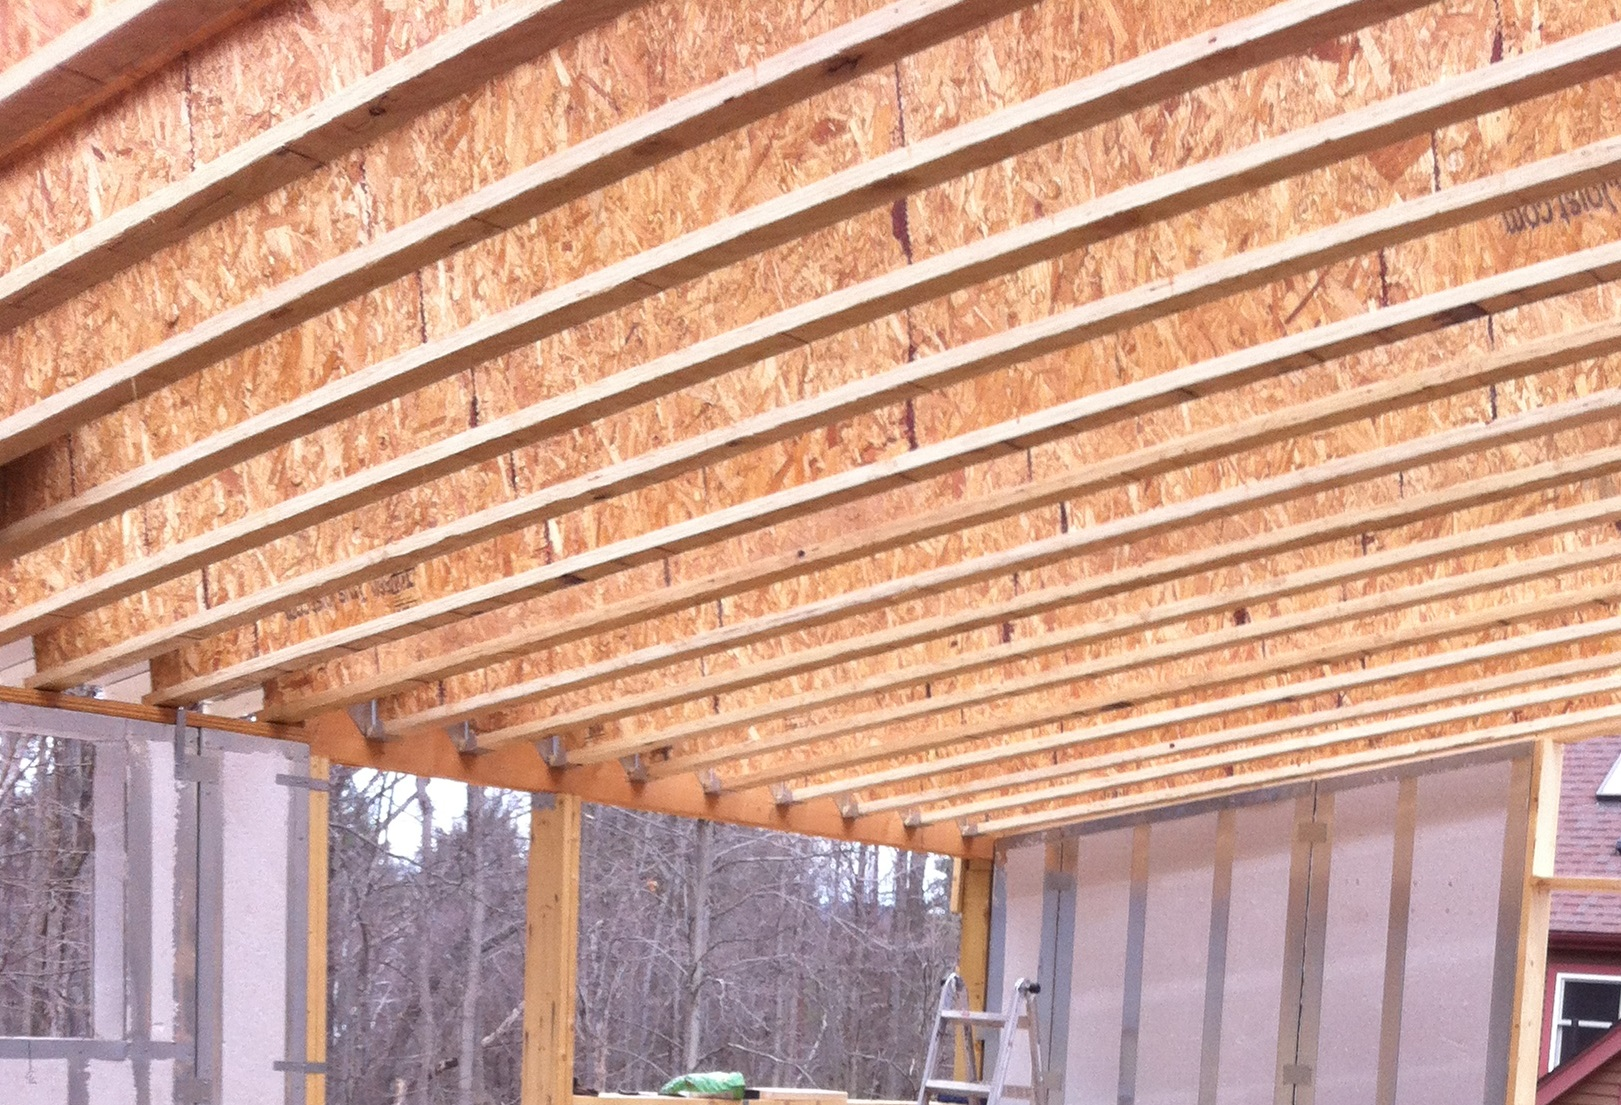 Manufactured I-joist rafters: dimensionally stable and strong, uses waste wood material, extensive processing with glues, extensive transportation energy used